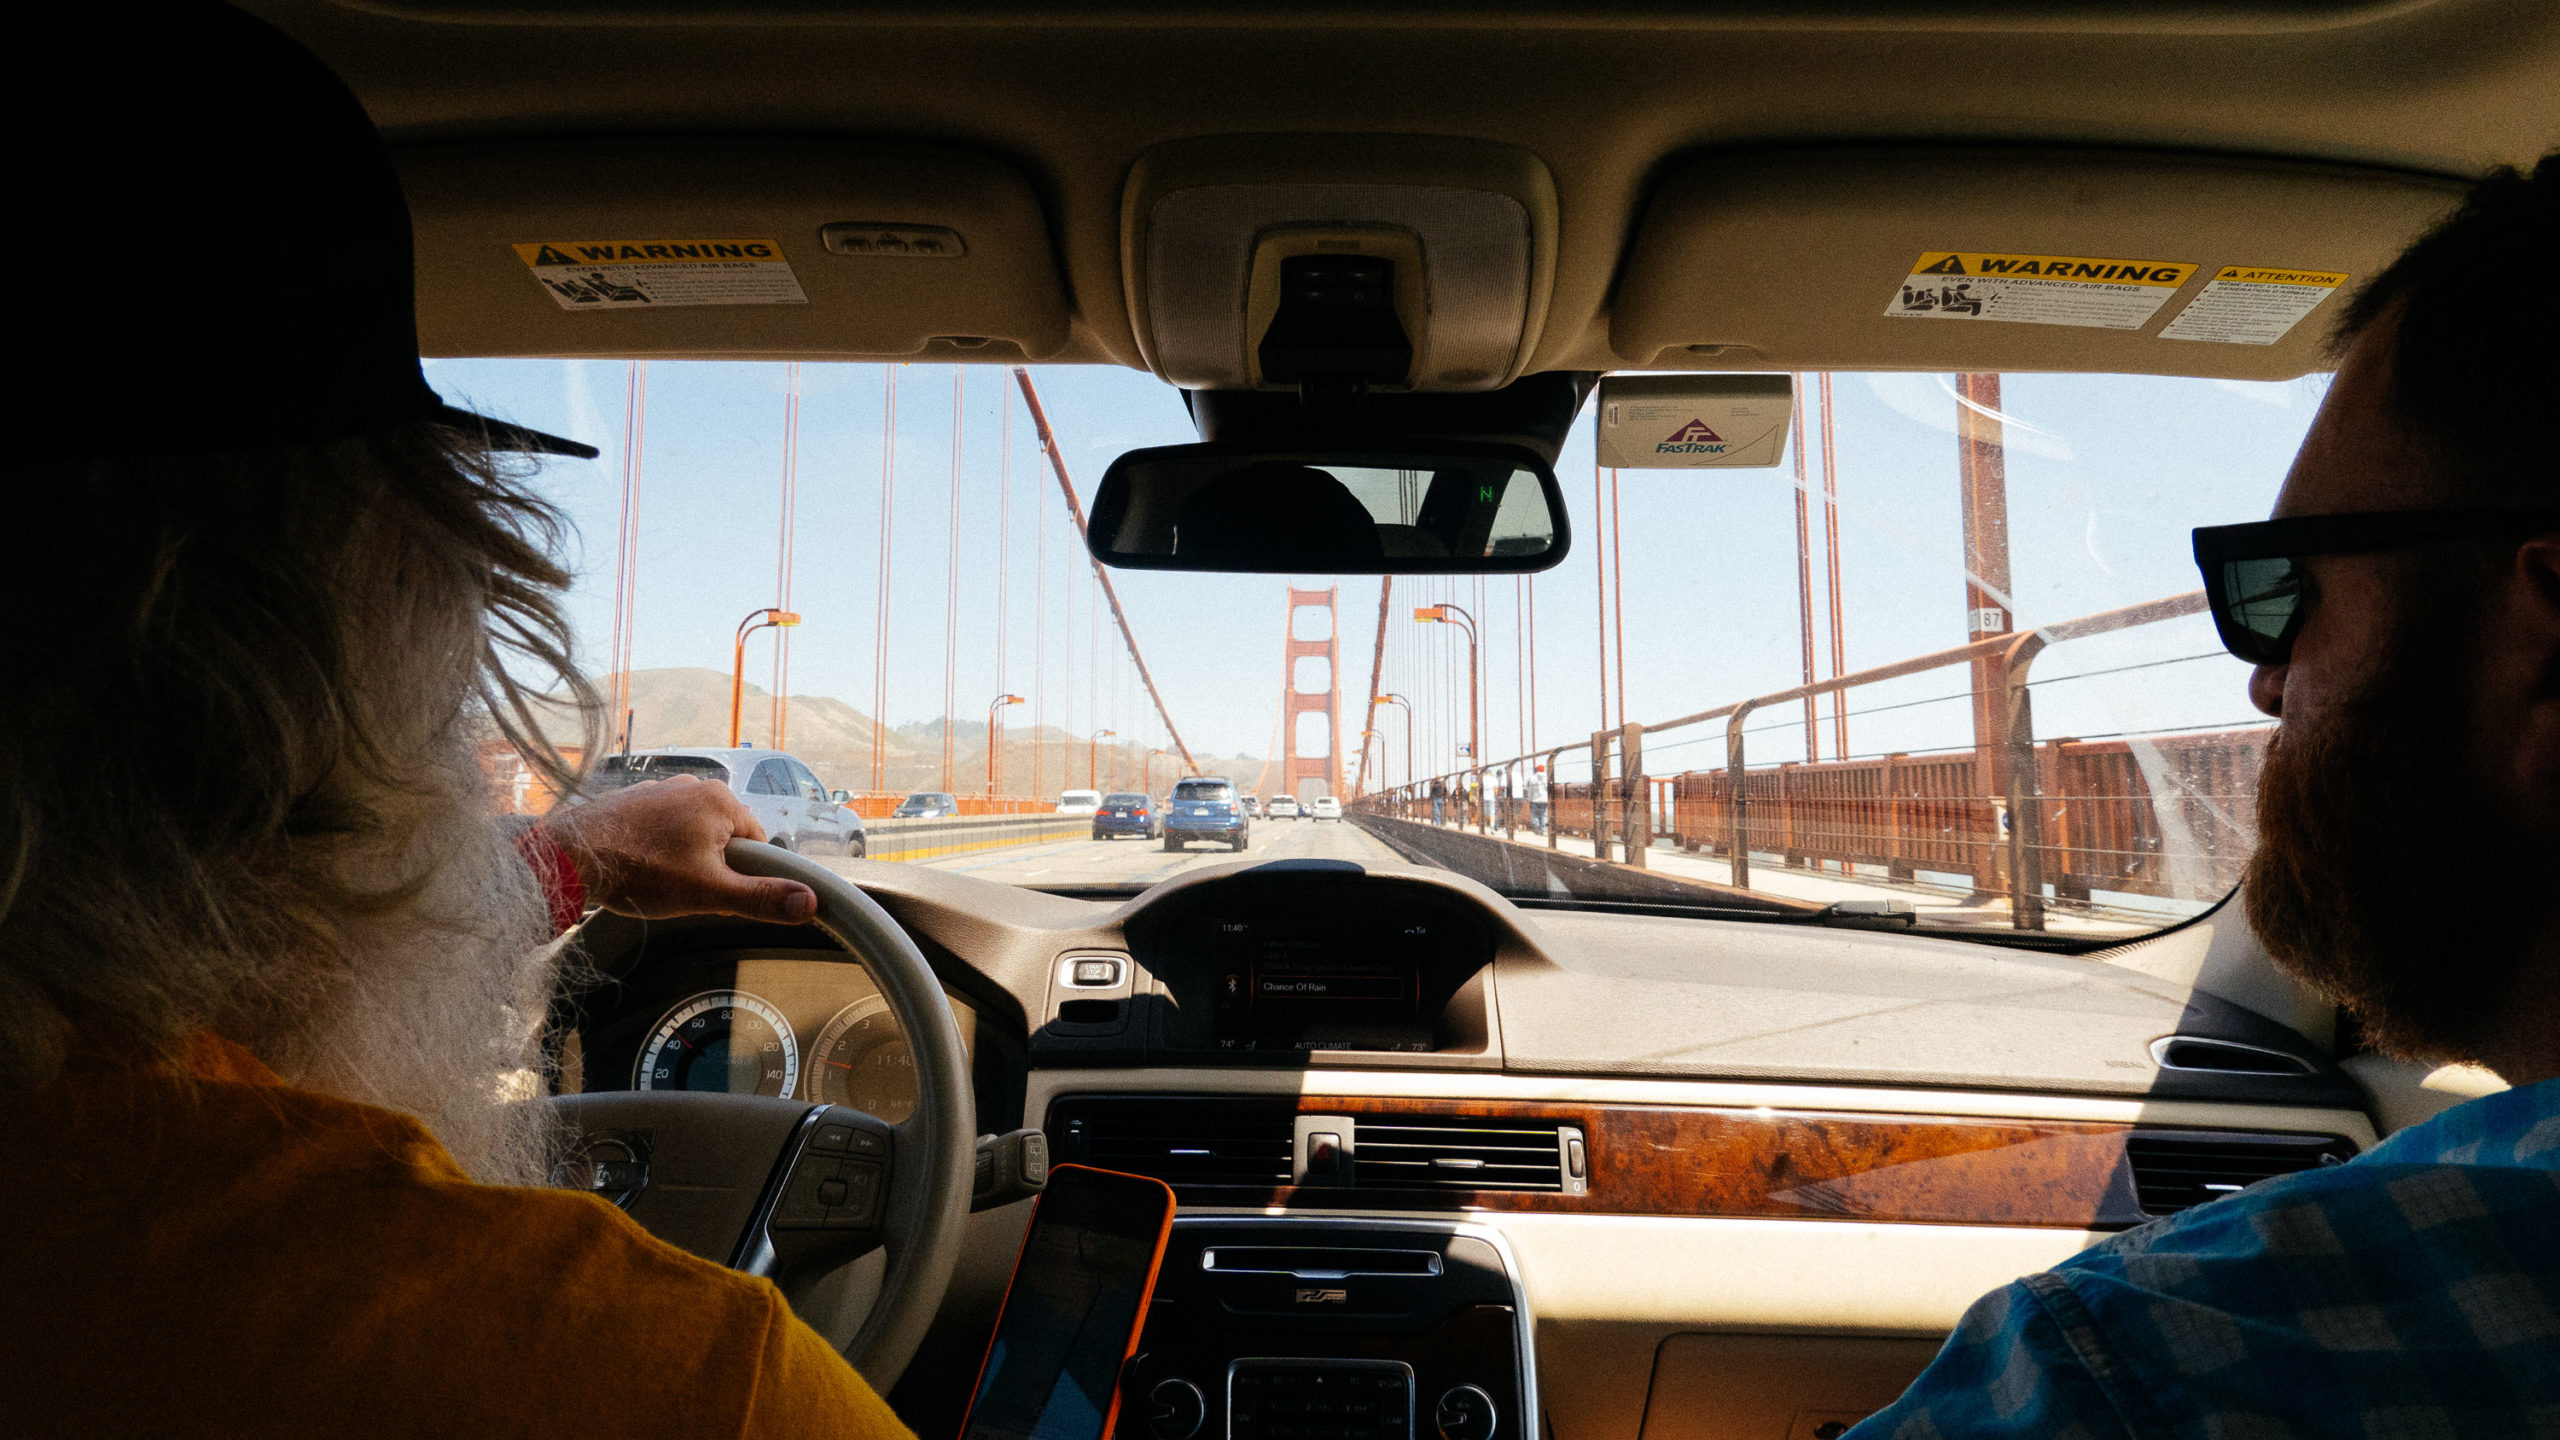 Looking through the windshield of a car driving across the Golden Gate bridge